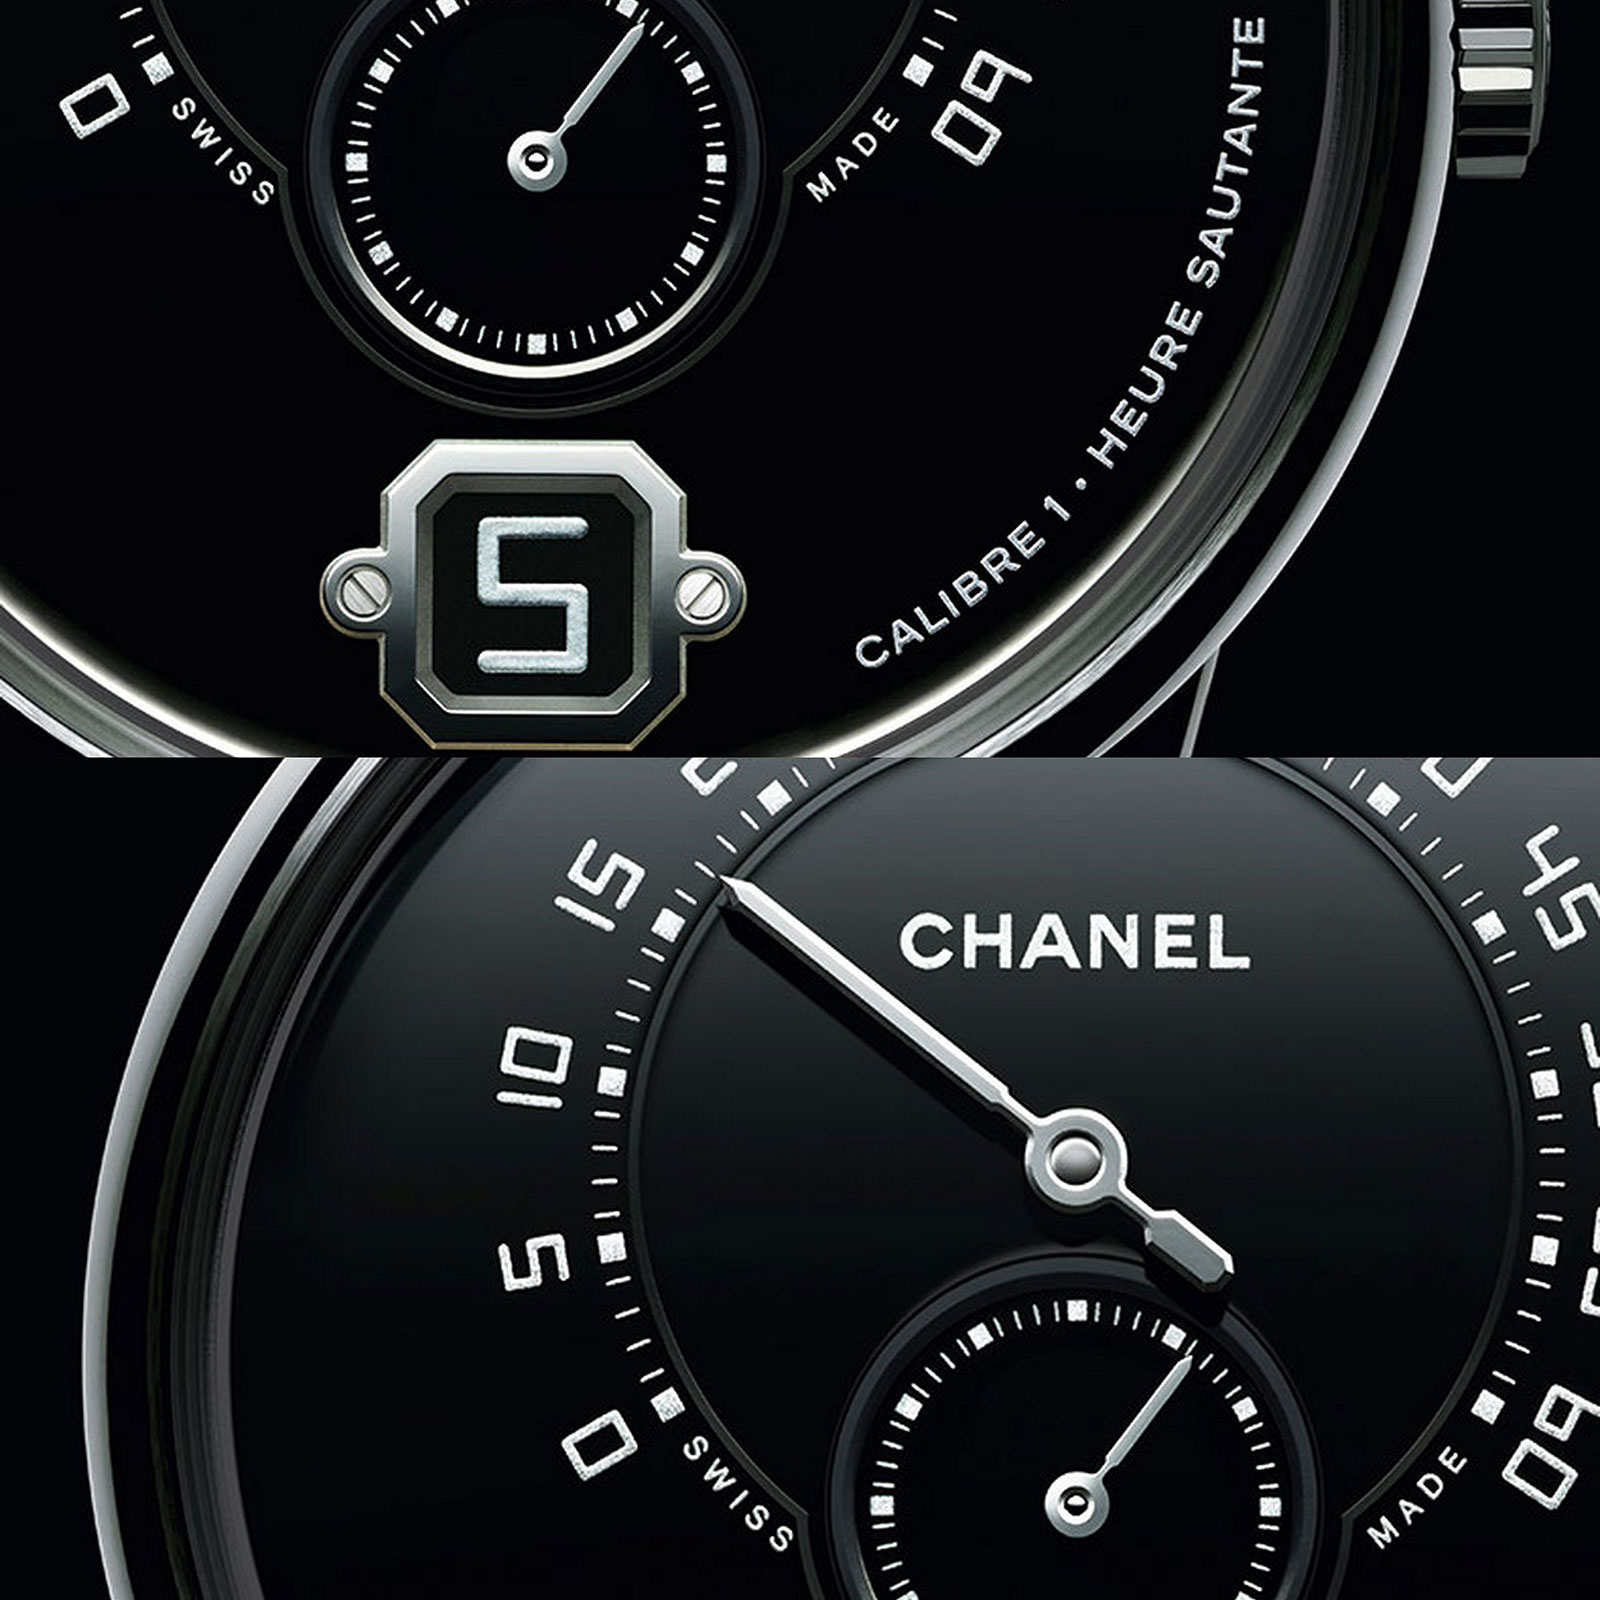 Chanel Monsieur de Chanel platinum 1